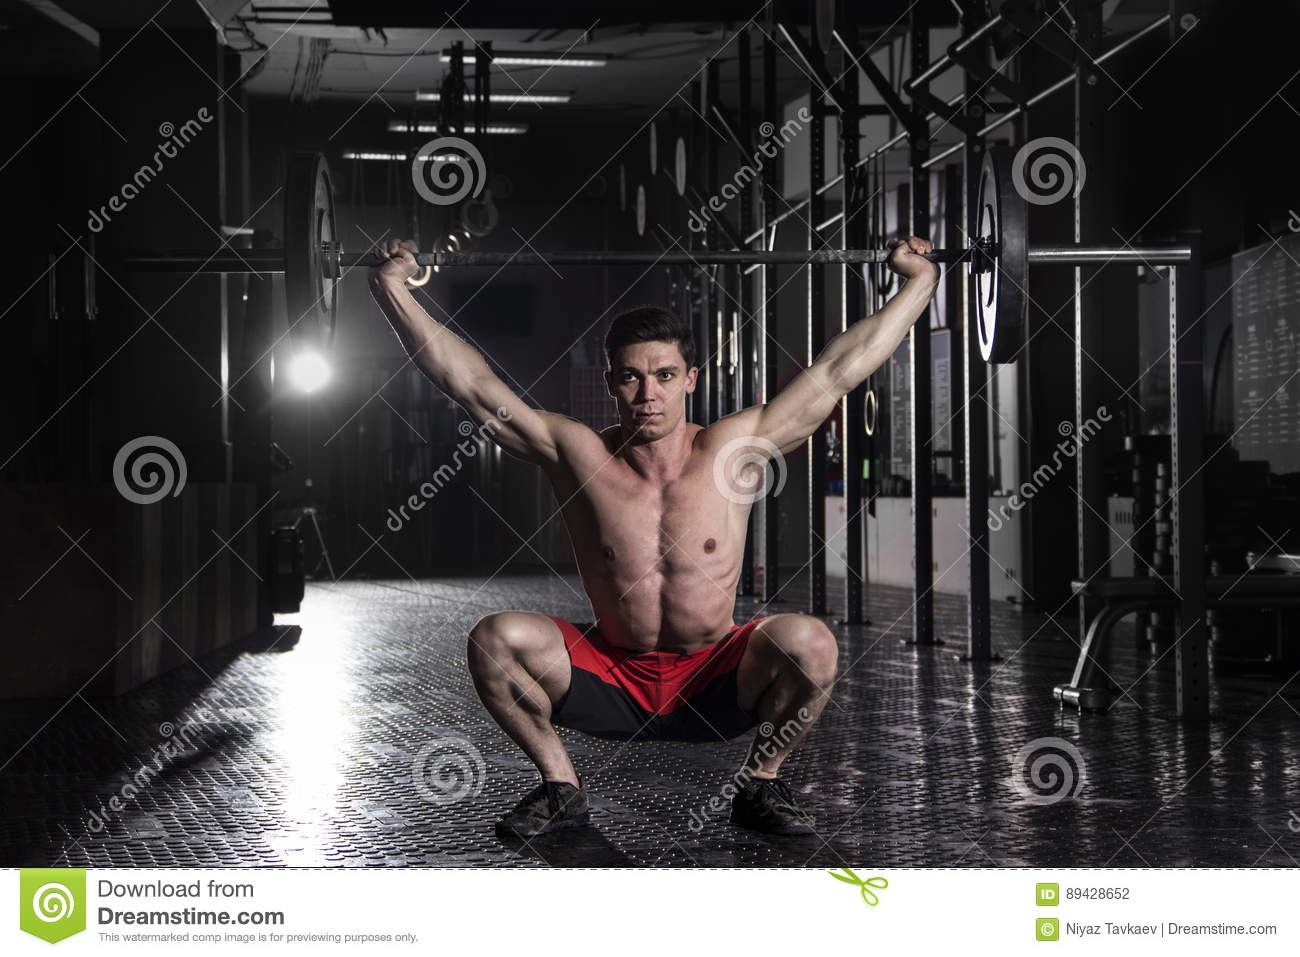 Muscular athlete doing the crossfit exerise in the gym.Doing the